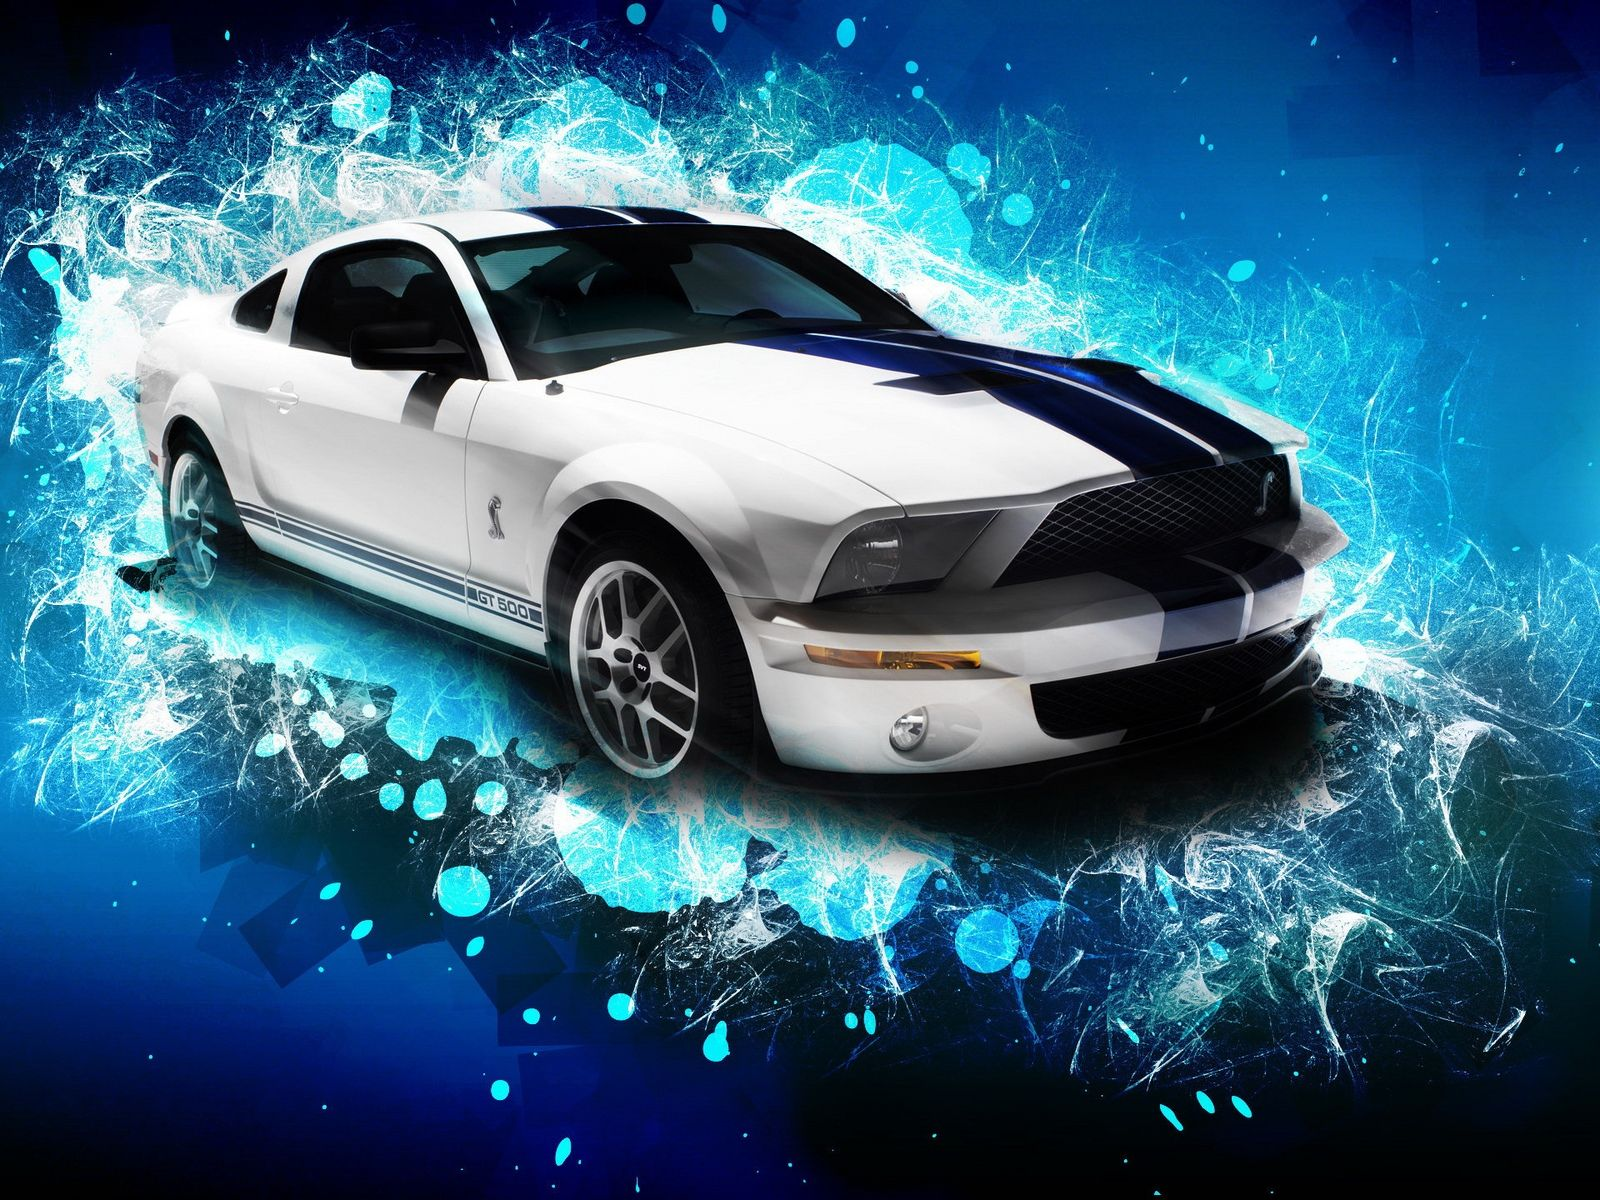 Collection Of Cars Wallpaper Full Hd On Hdwallpapers Wallpaper Hd Cars Wallpapers